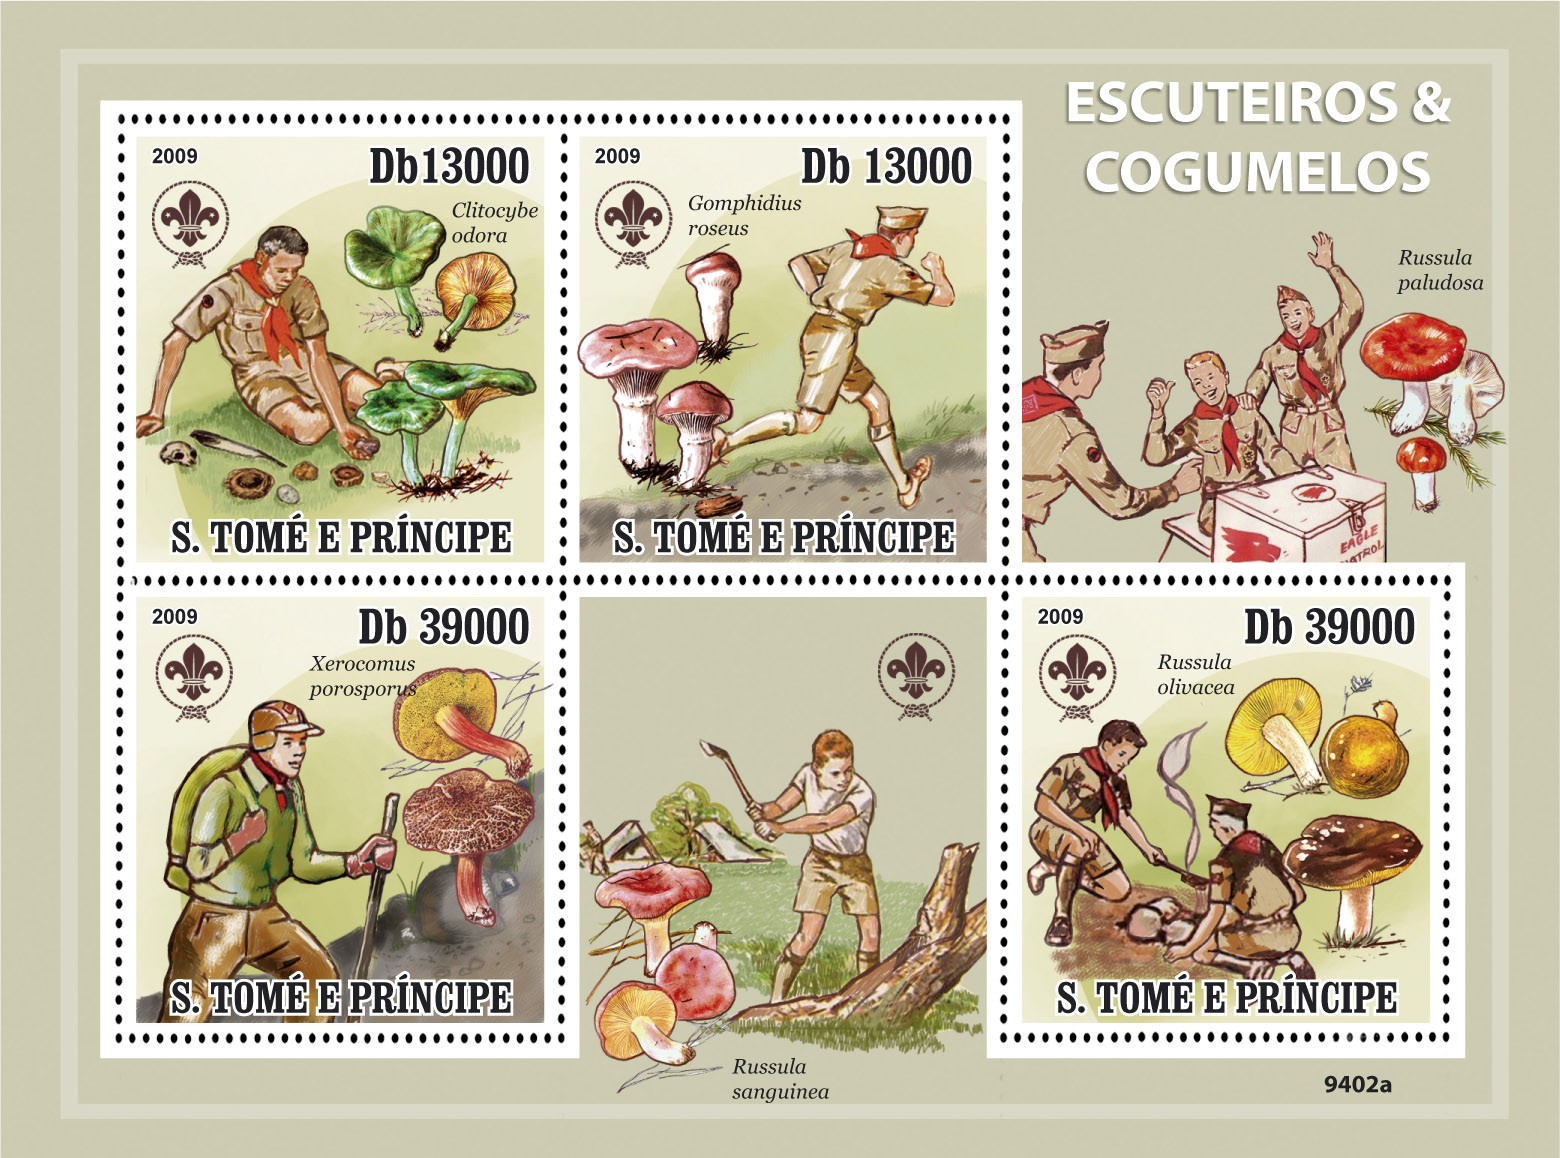 Scouts & Mushrooms - Issue of Sao Tome and Principe postage stamps